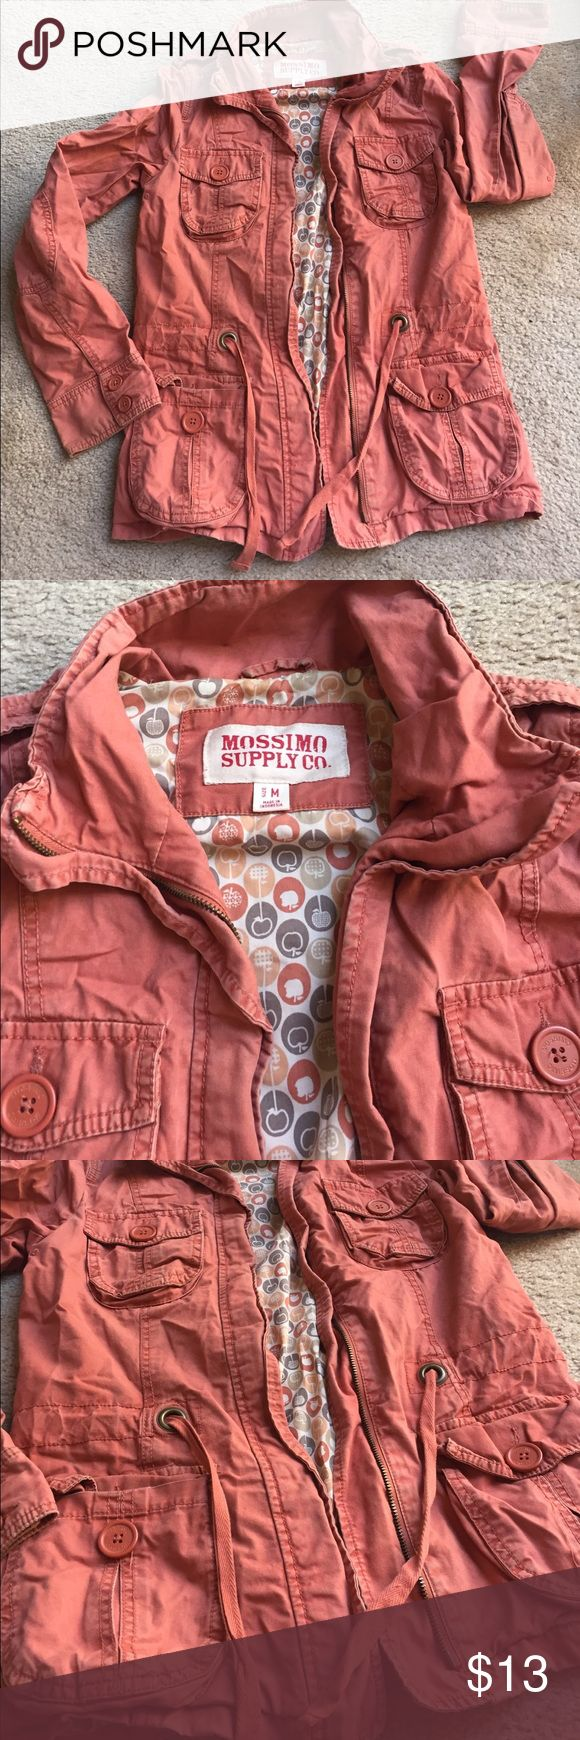 Mossimo Peach Orange Zip Up Jacket No stains no holes Jackets & Coats